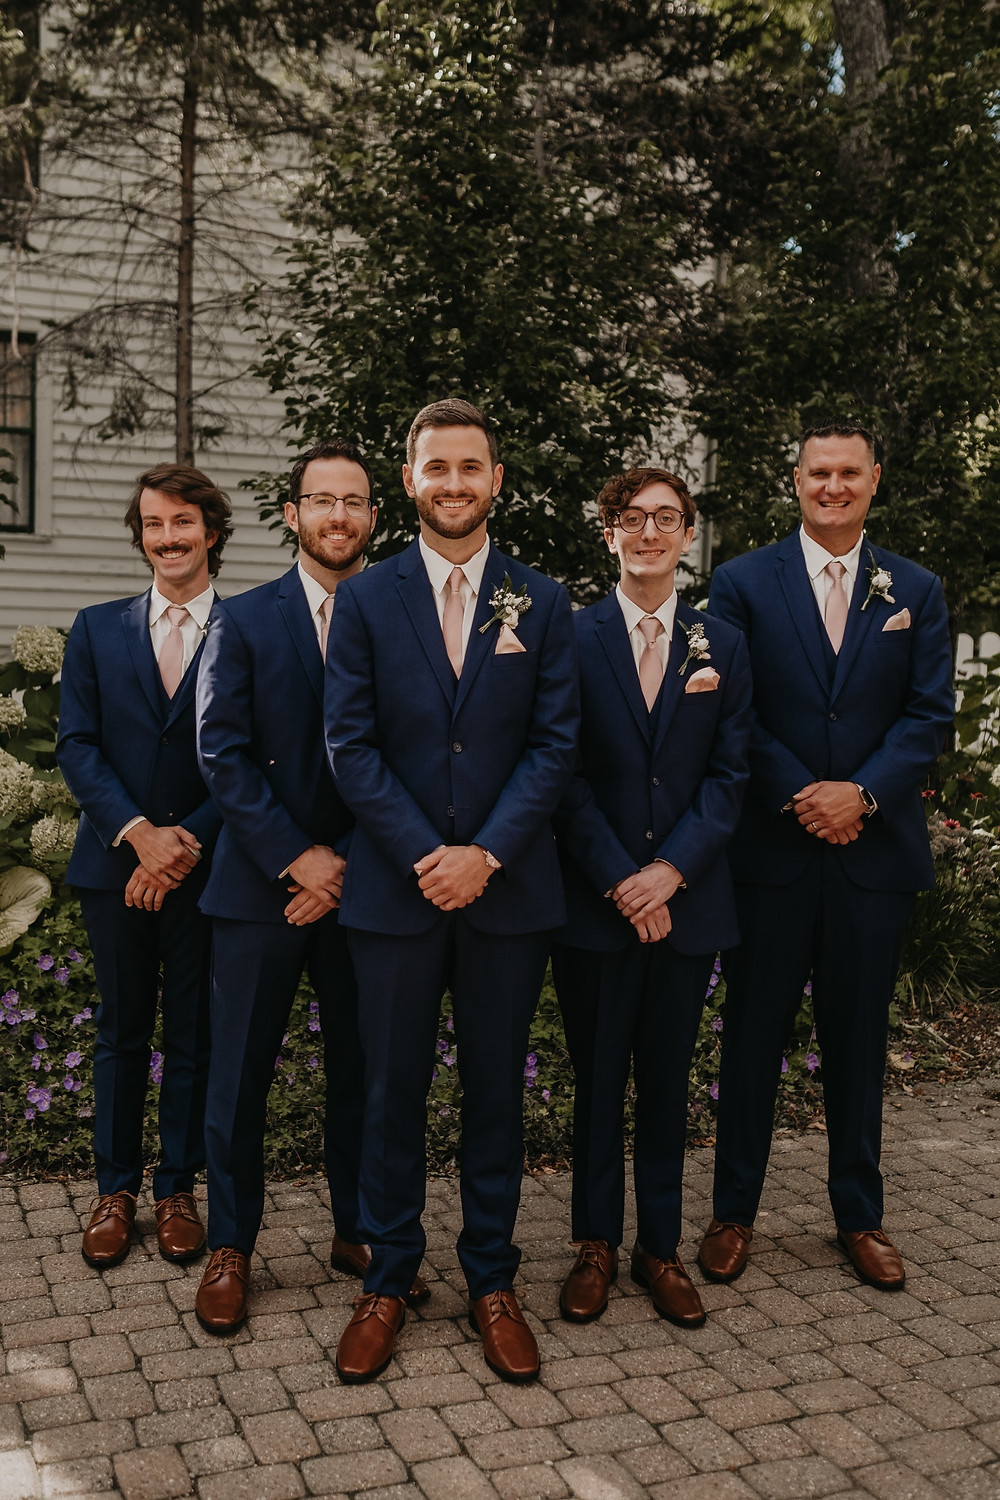 Groomsmen at Mackinac summer wedding. Photographed by Nicole Leanne Photography.